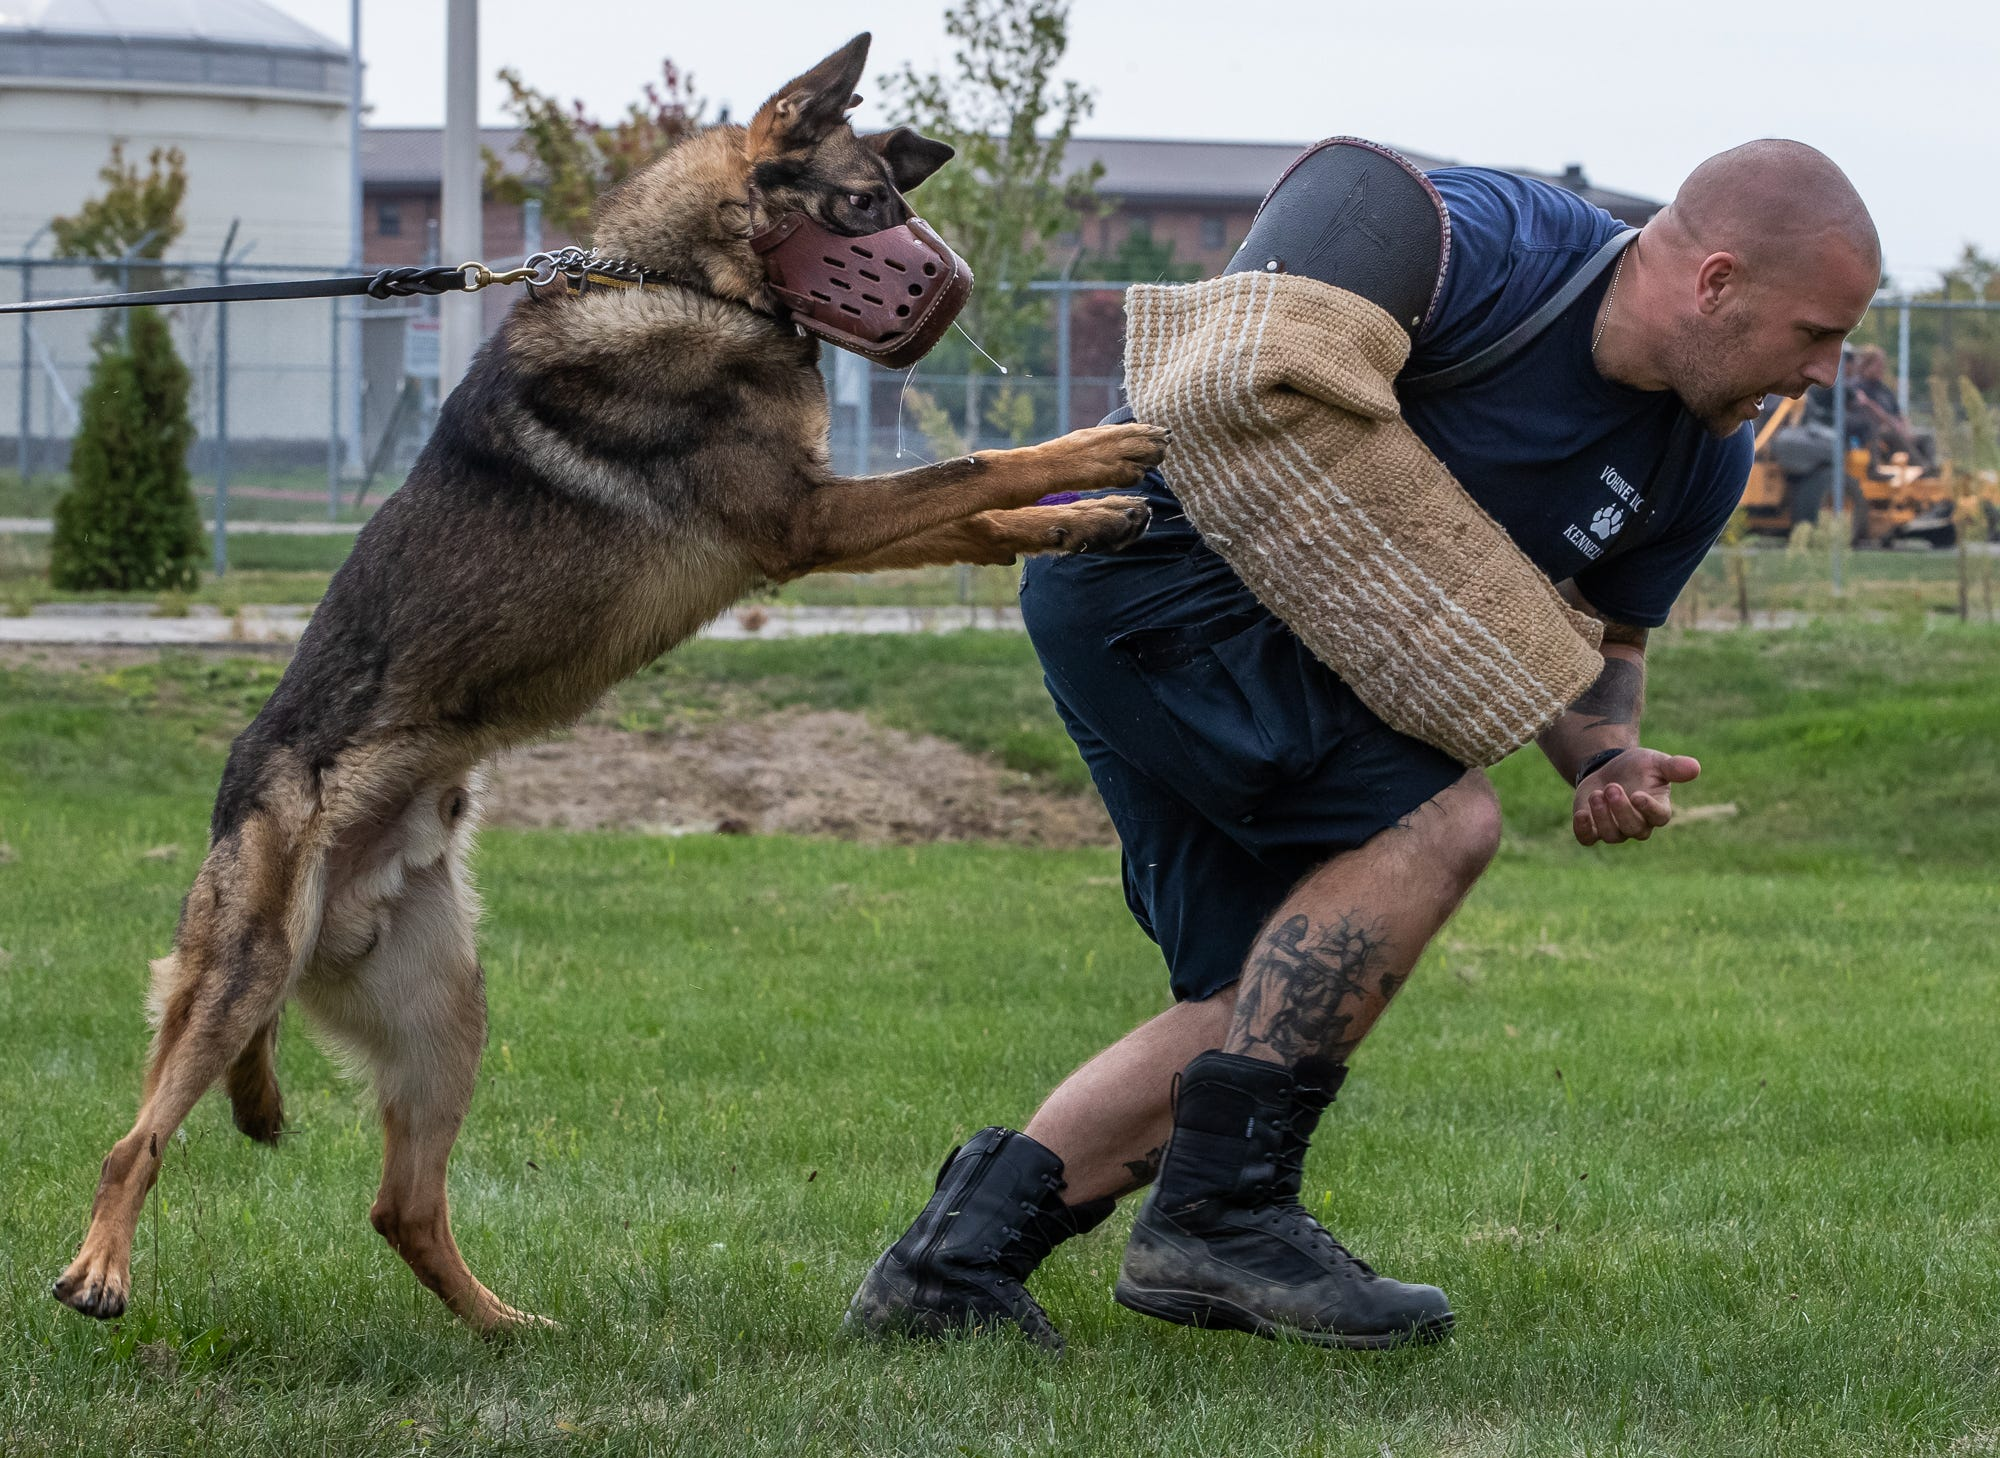 Adam Elliott (not pictured), of the Stillwater Police Department in Oklahoma, releases his K-9, Rotex, on a decoy during training at Vohne Liche Kennels on Wednesday, Sept. 23, 2020. Rotex and Elliot are working on bites without using the typical bite gear. The exercise helps get the dogs accustomed to biting things other than typical bite gear.